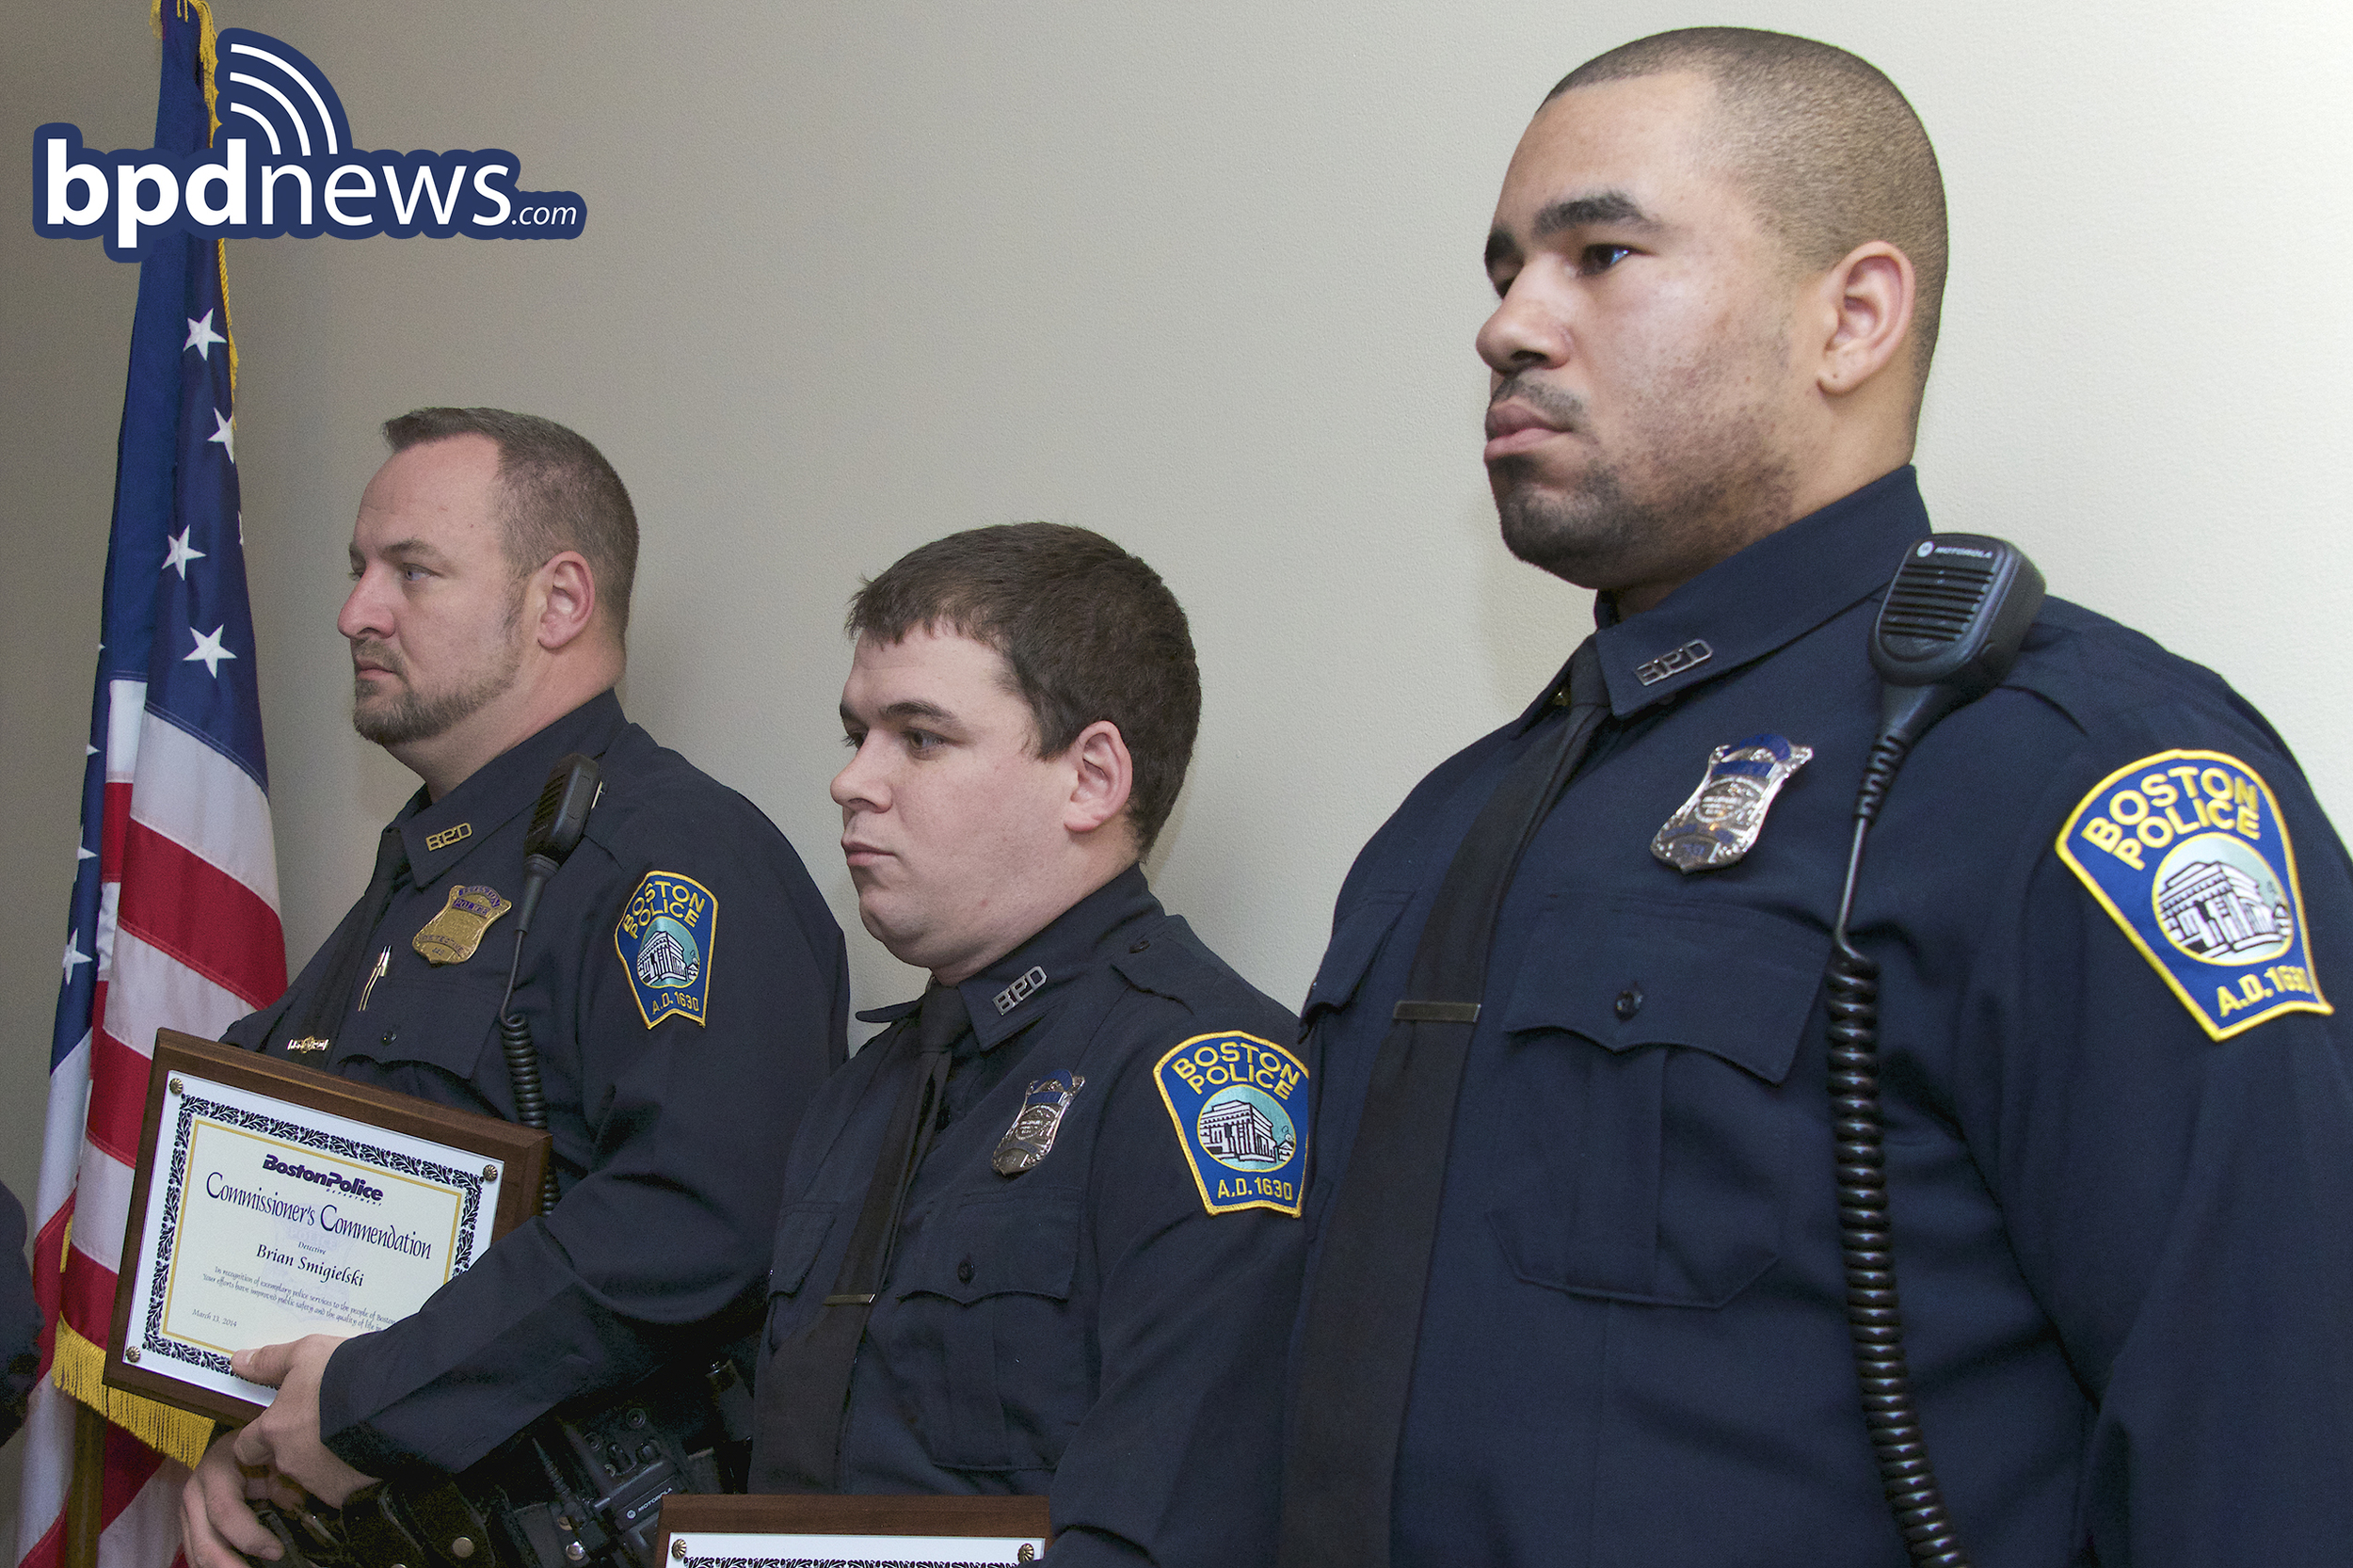 DETECTIVE SMIGIELSKI AND OFFICERS PUOPOLO AND DAVIS RECEIVE COMMISSIONER'S COMMENDATIONS